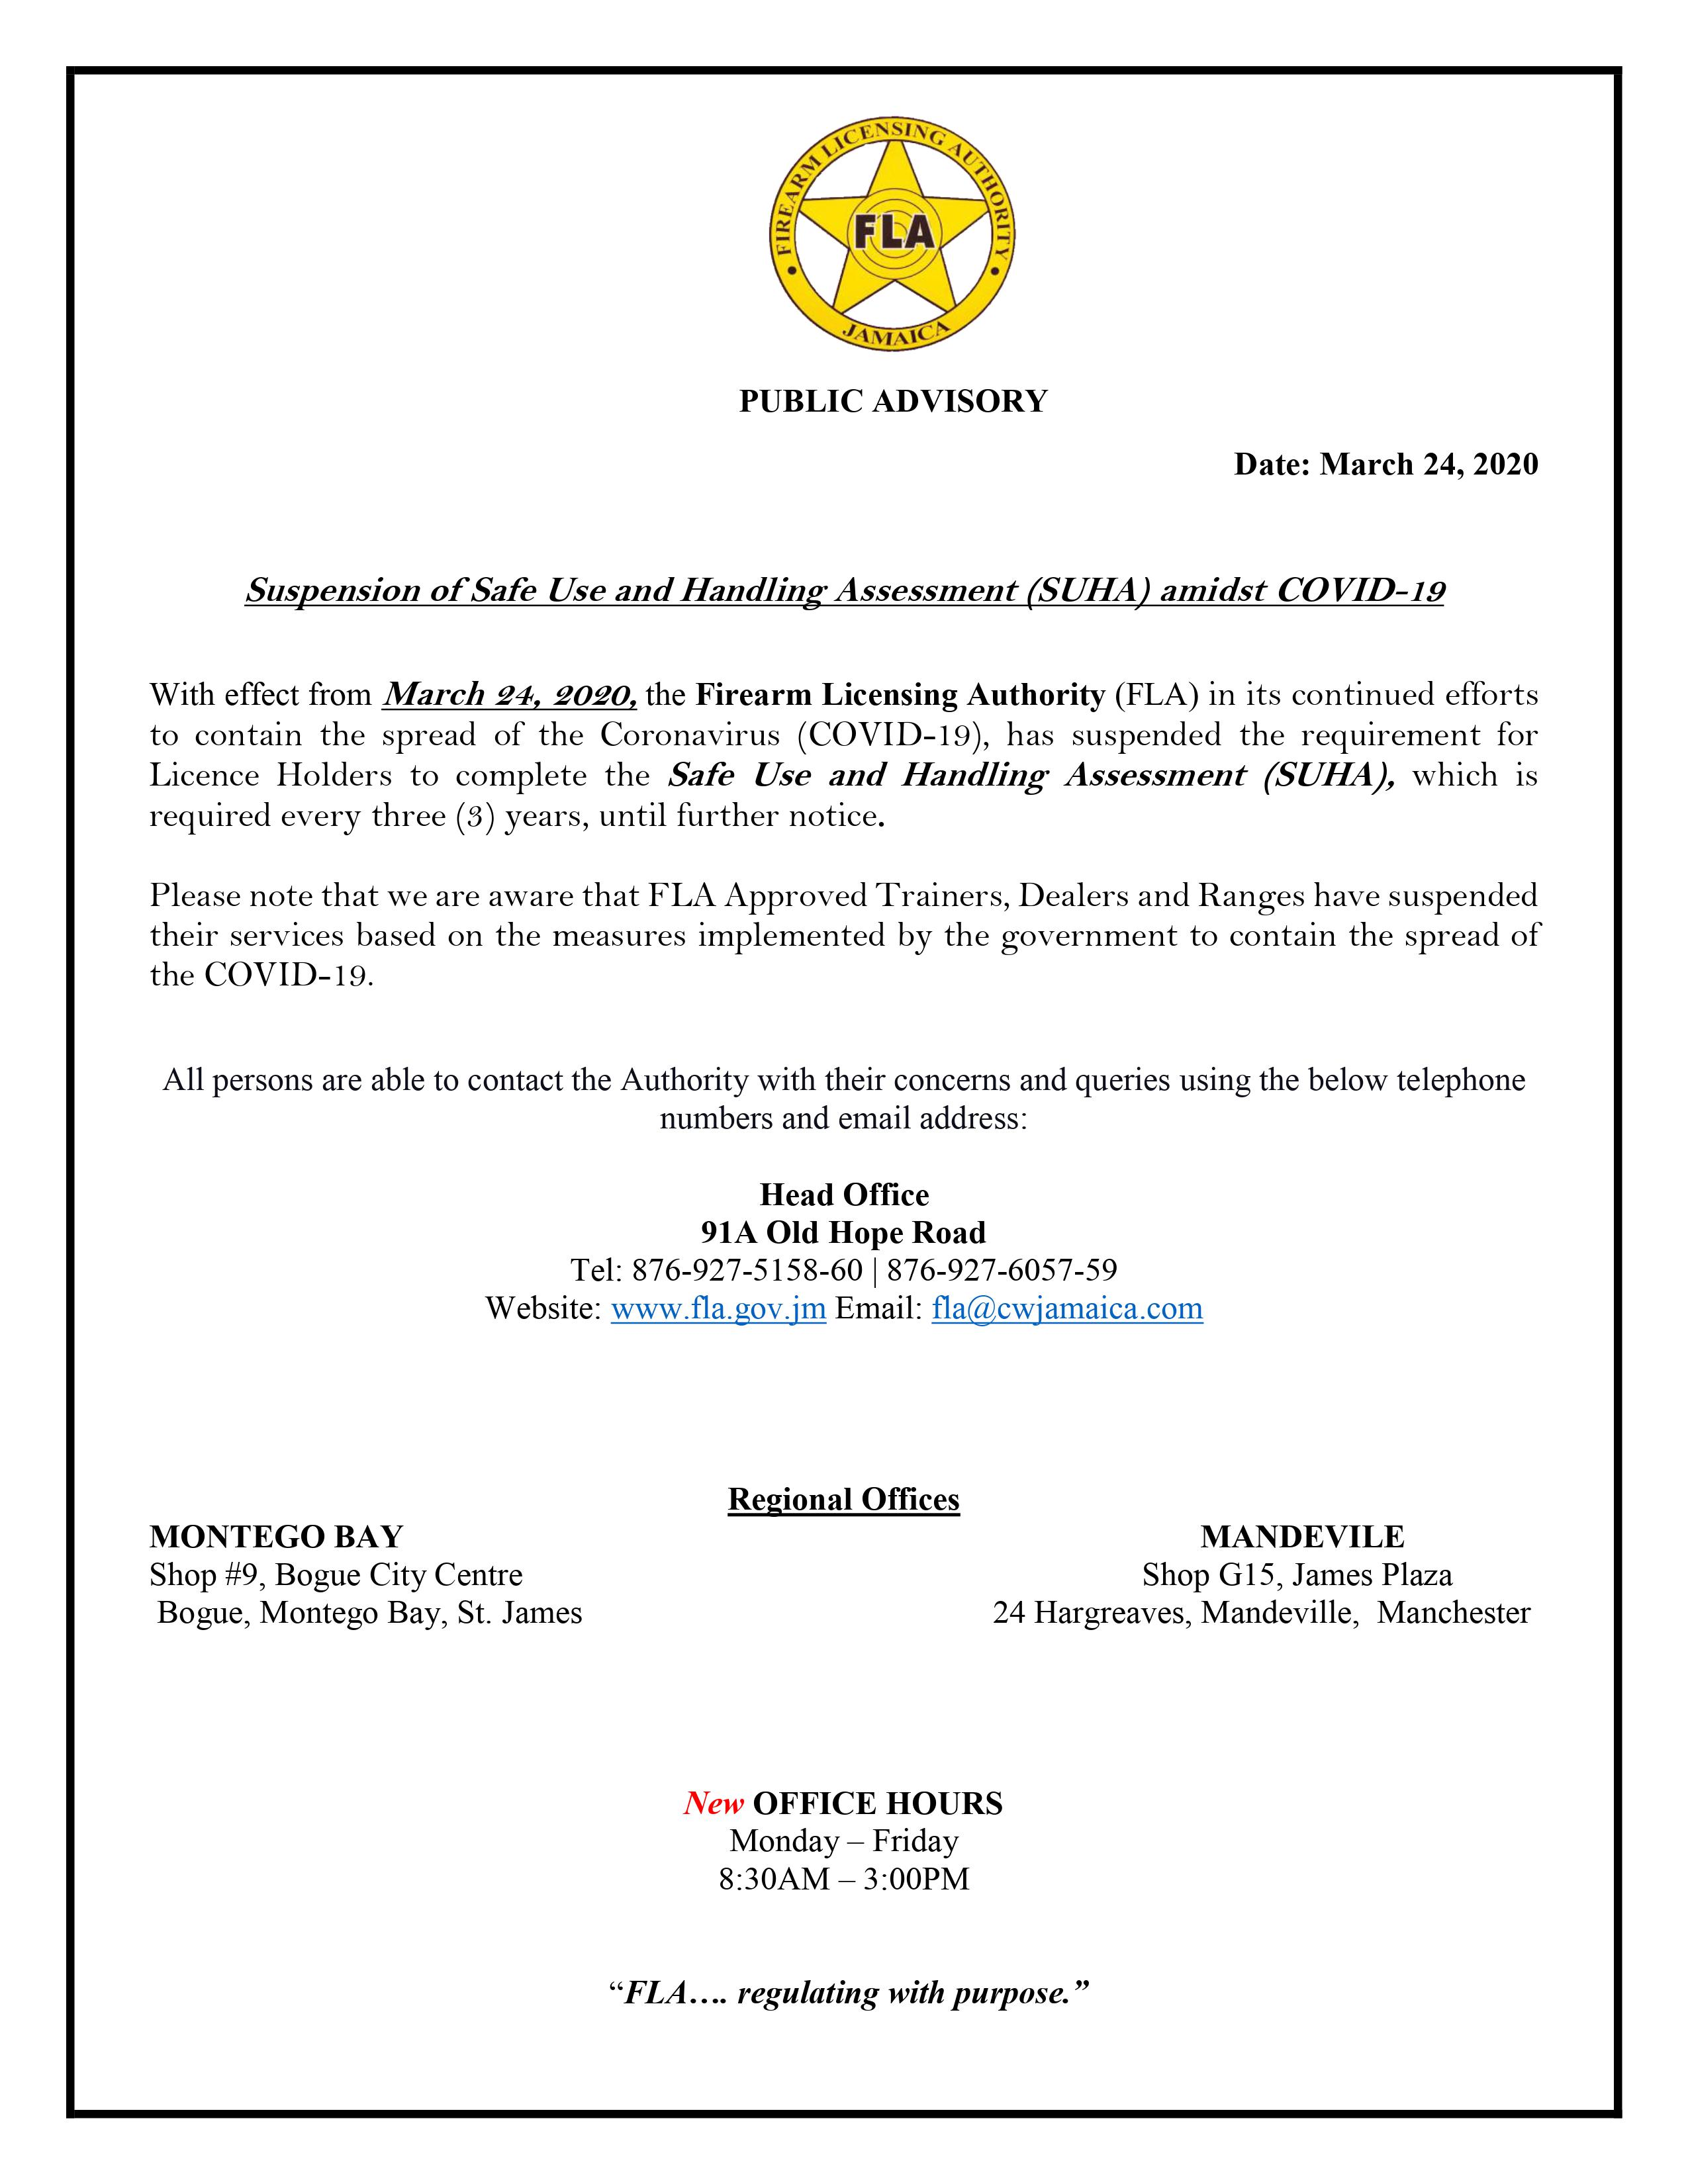 PUBLIC NOTICE Safe Use and Handling Assessment SUHA